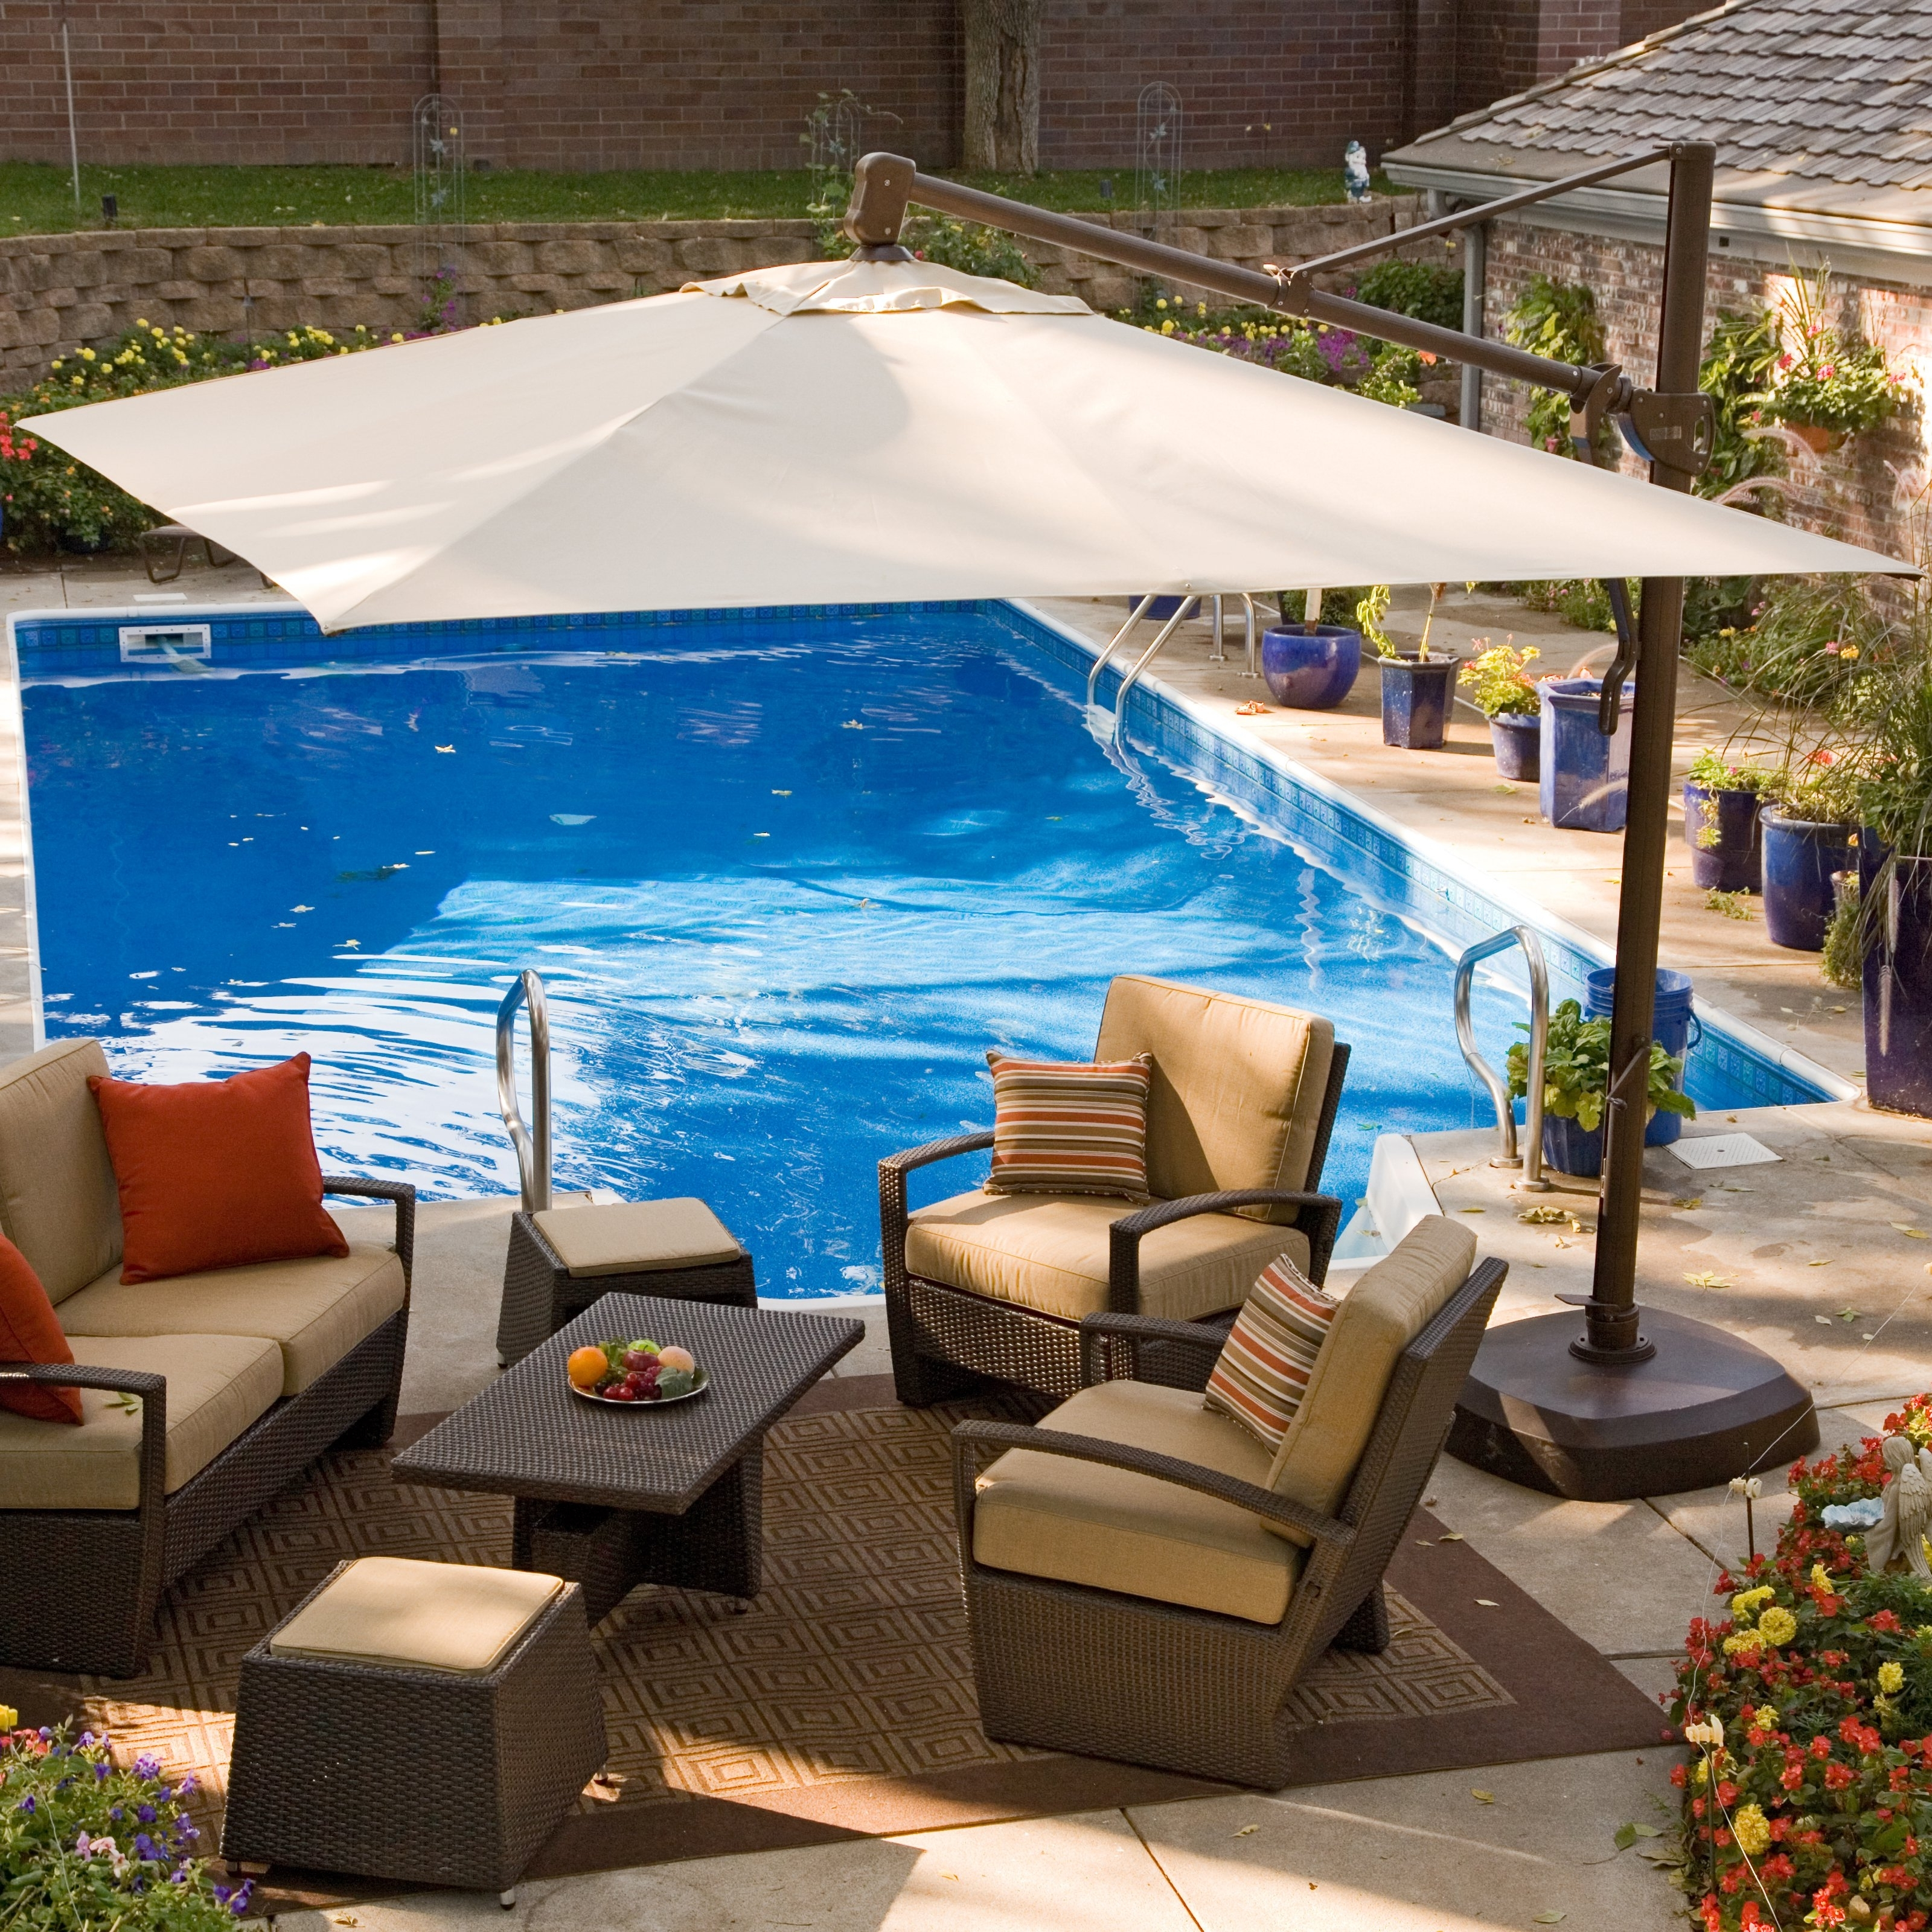 Well Liked Offset Patio Umbrellas With Base Intended For Patio & Garden: Stunning Offset Patio Umbrella Shields Guest (View 19 of 20)